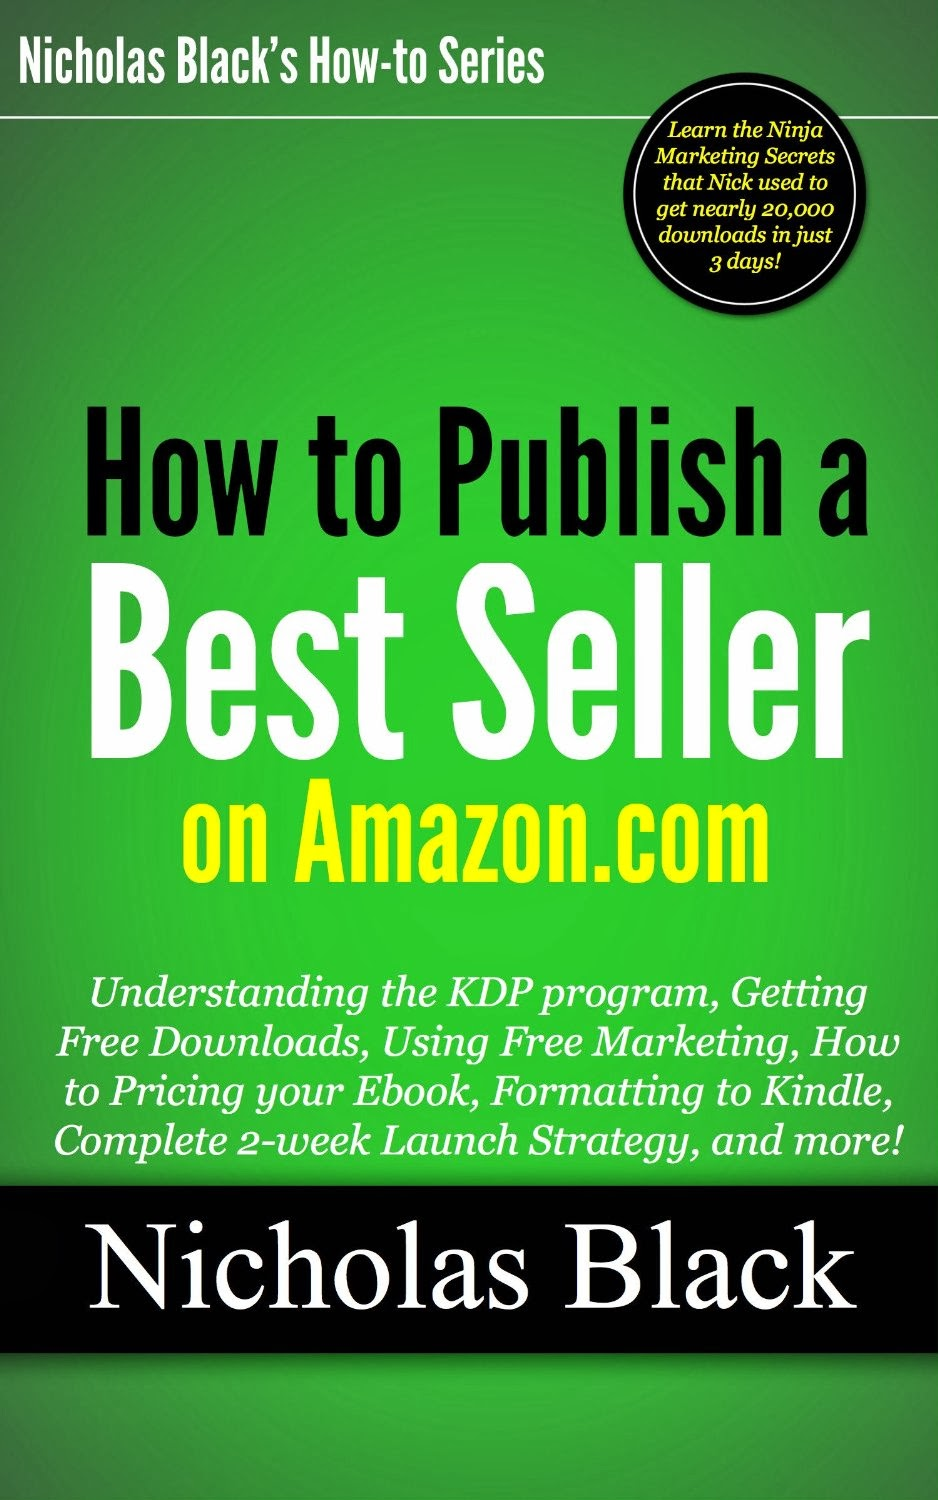 How to Publish a Best Seller